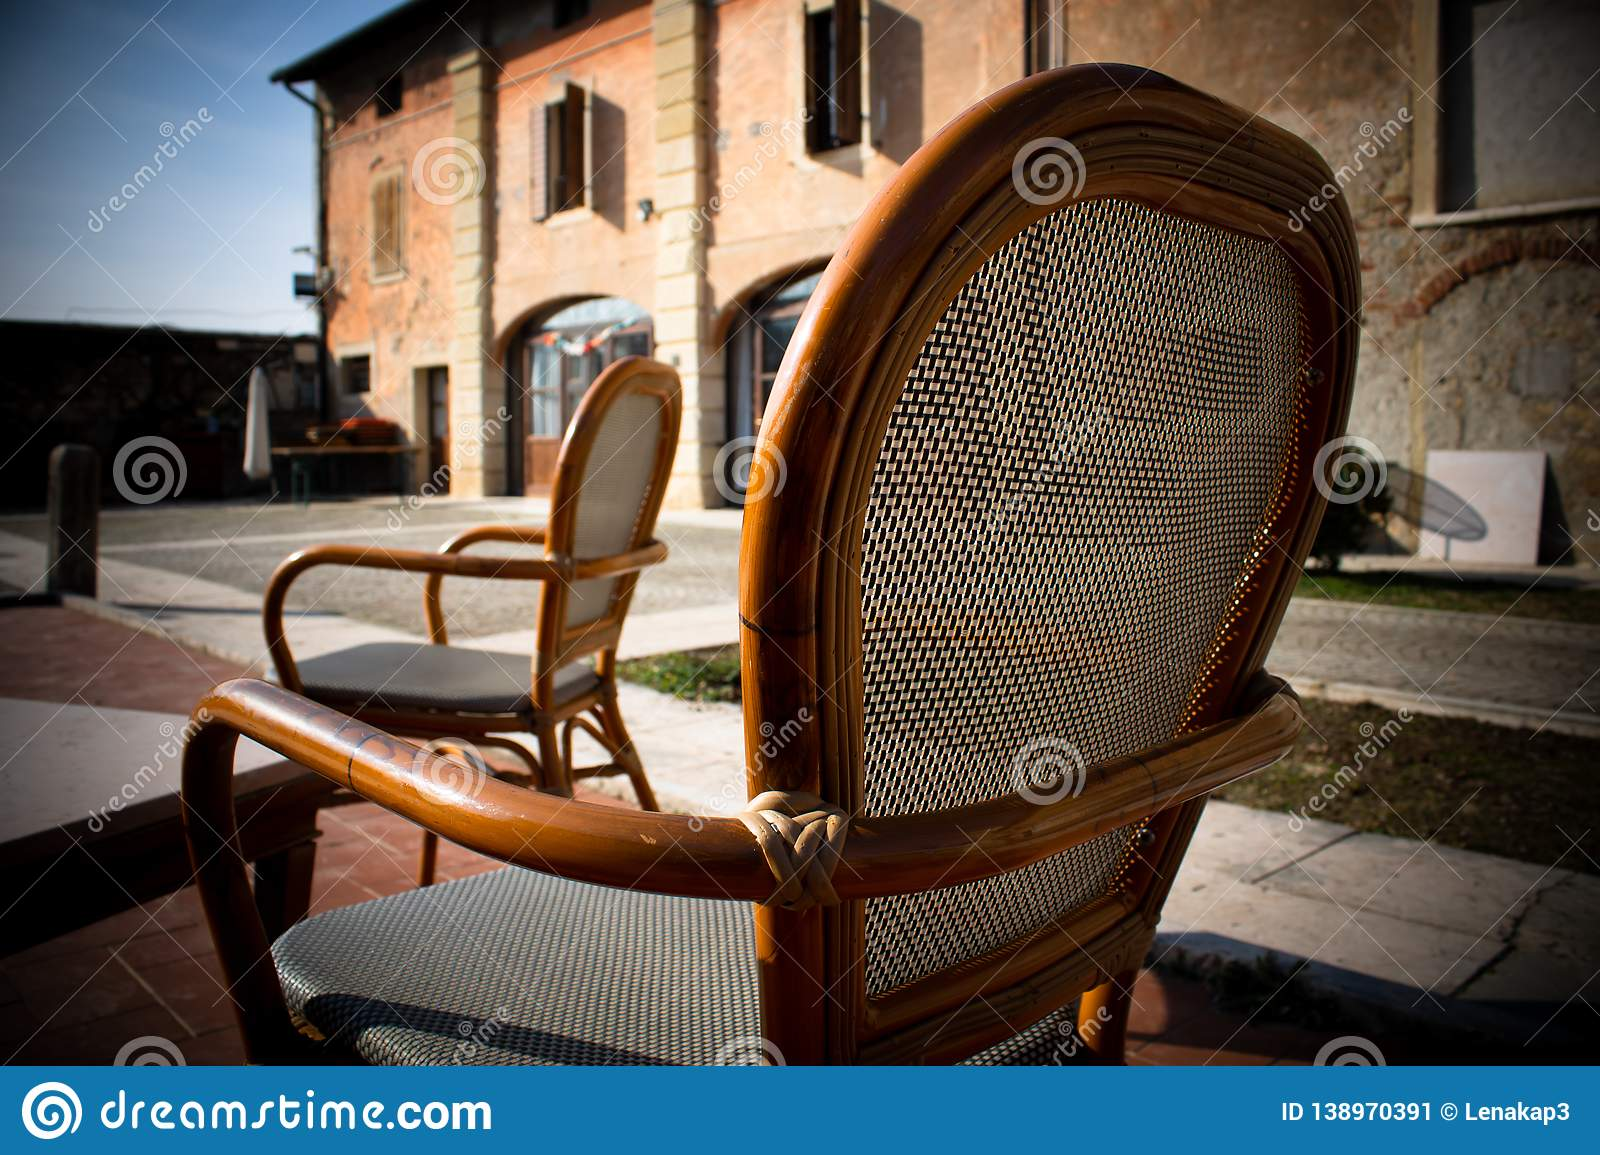 Two cozy chairs standing in the yard near the old building